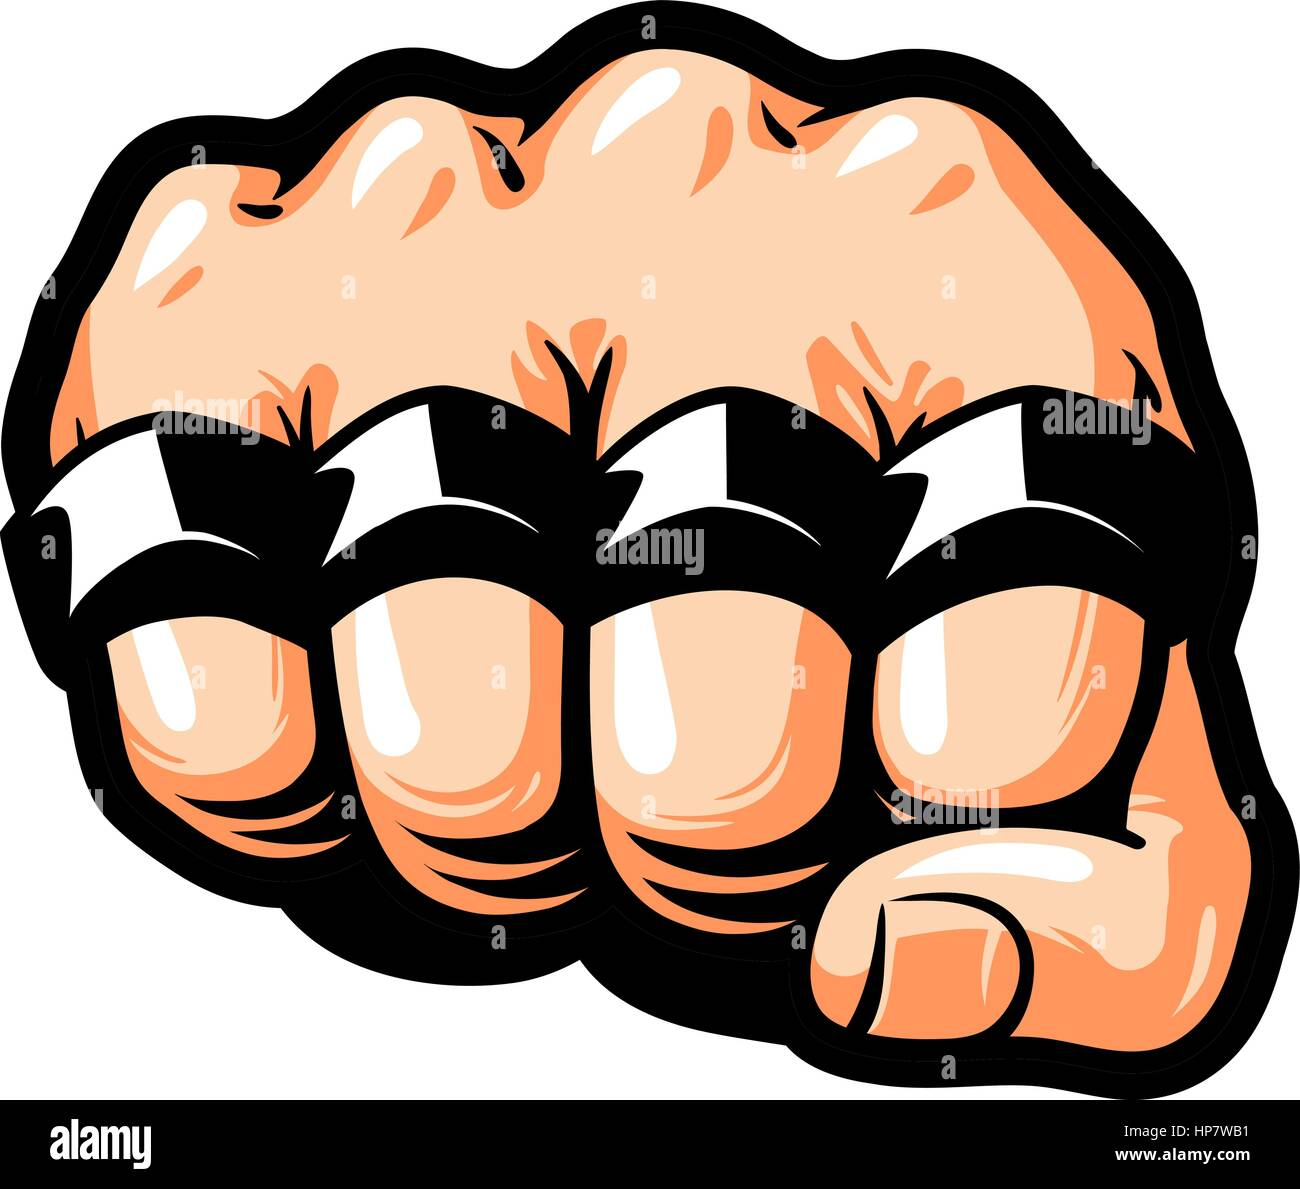 Knuckle Duster Stock Photos Knuckle Duster Stock Images Alamy